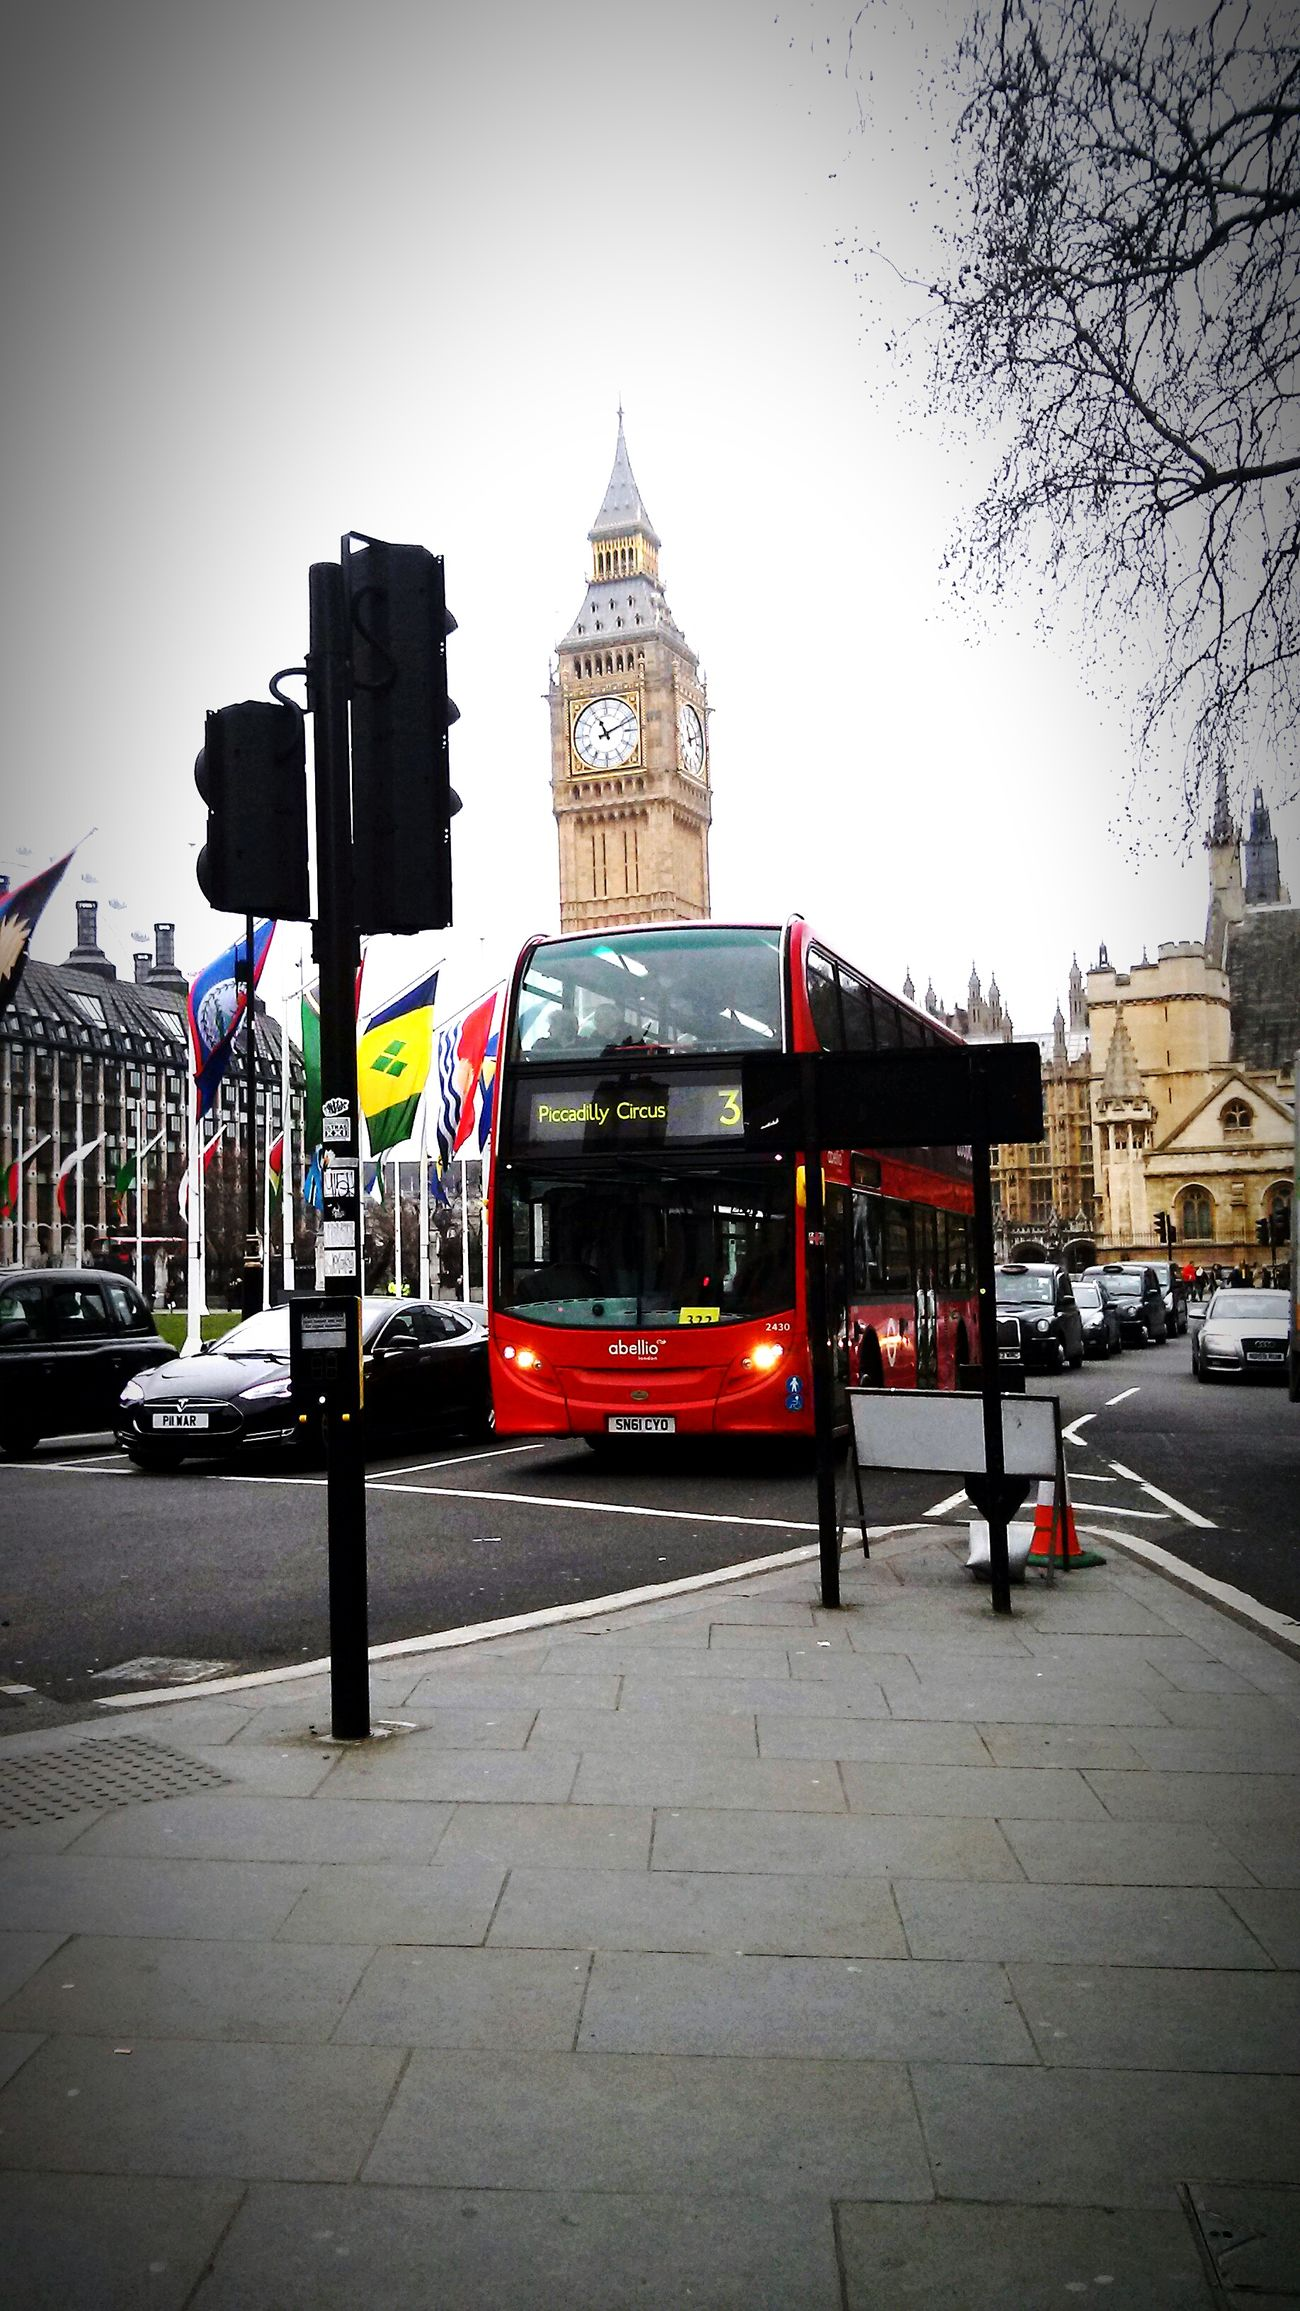 LONDON❤ Bigben Last Holiday My Best Moment Lovely Happy :) *.* Love ♥ Beautiful Hello World 안녕하세요 您好 아녕하세요 ❤ ❤️💜💙💚💛 你好 Annyeonghaseyo